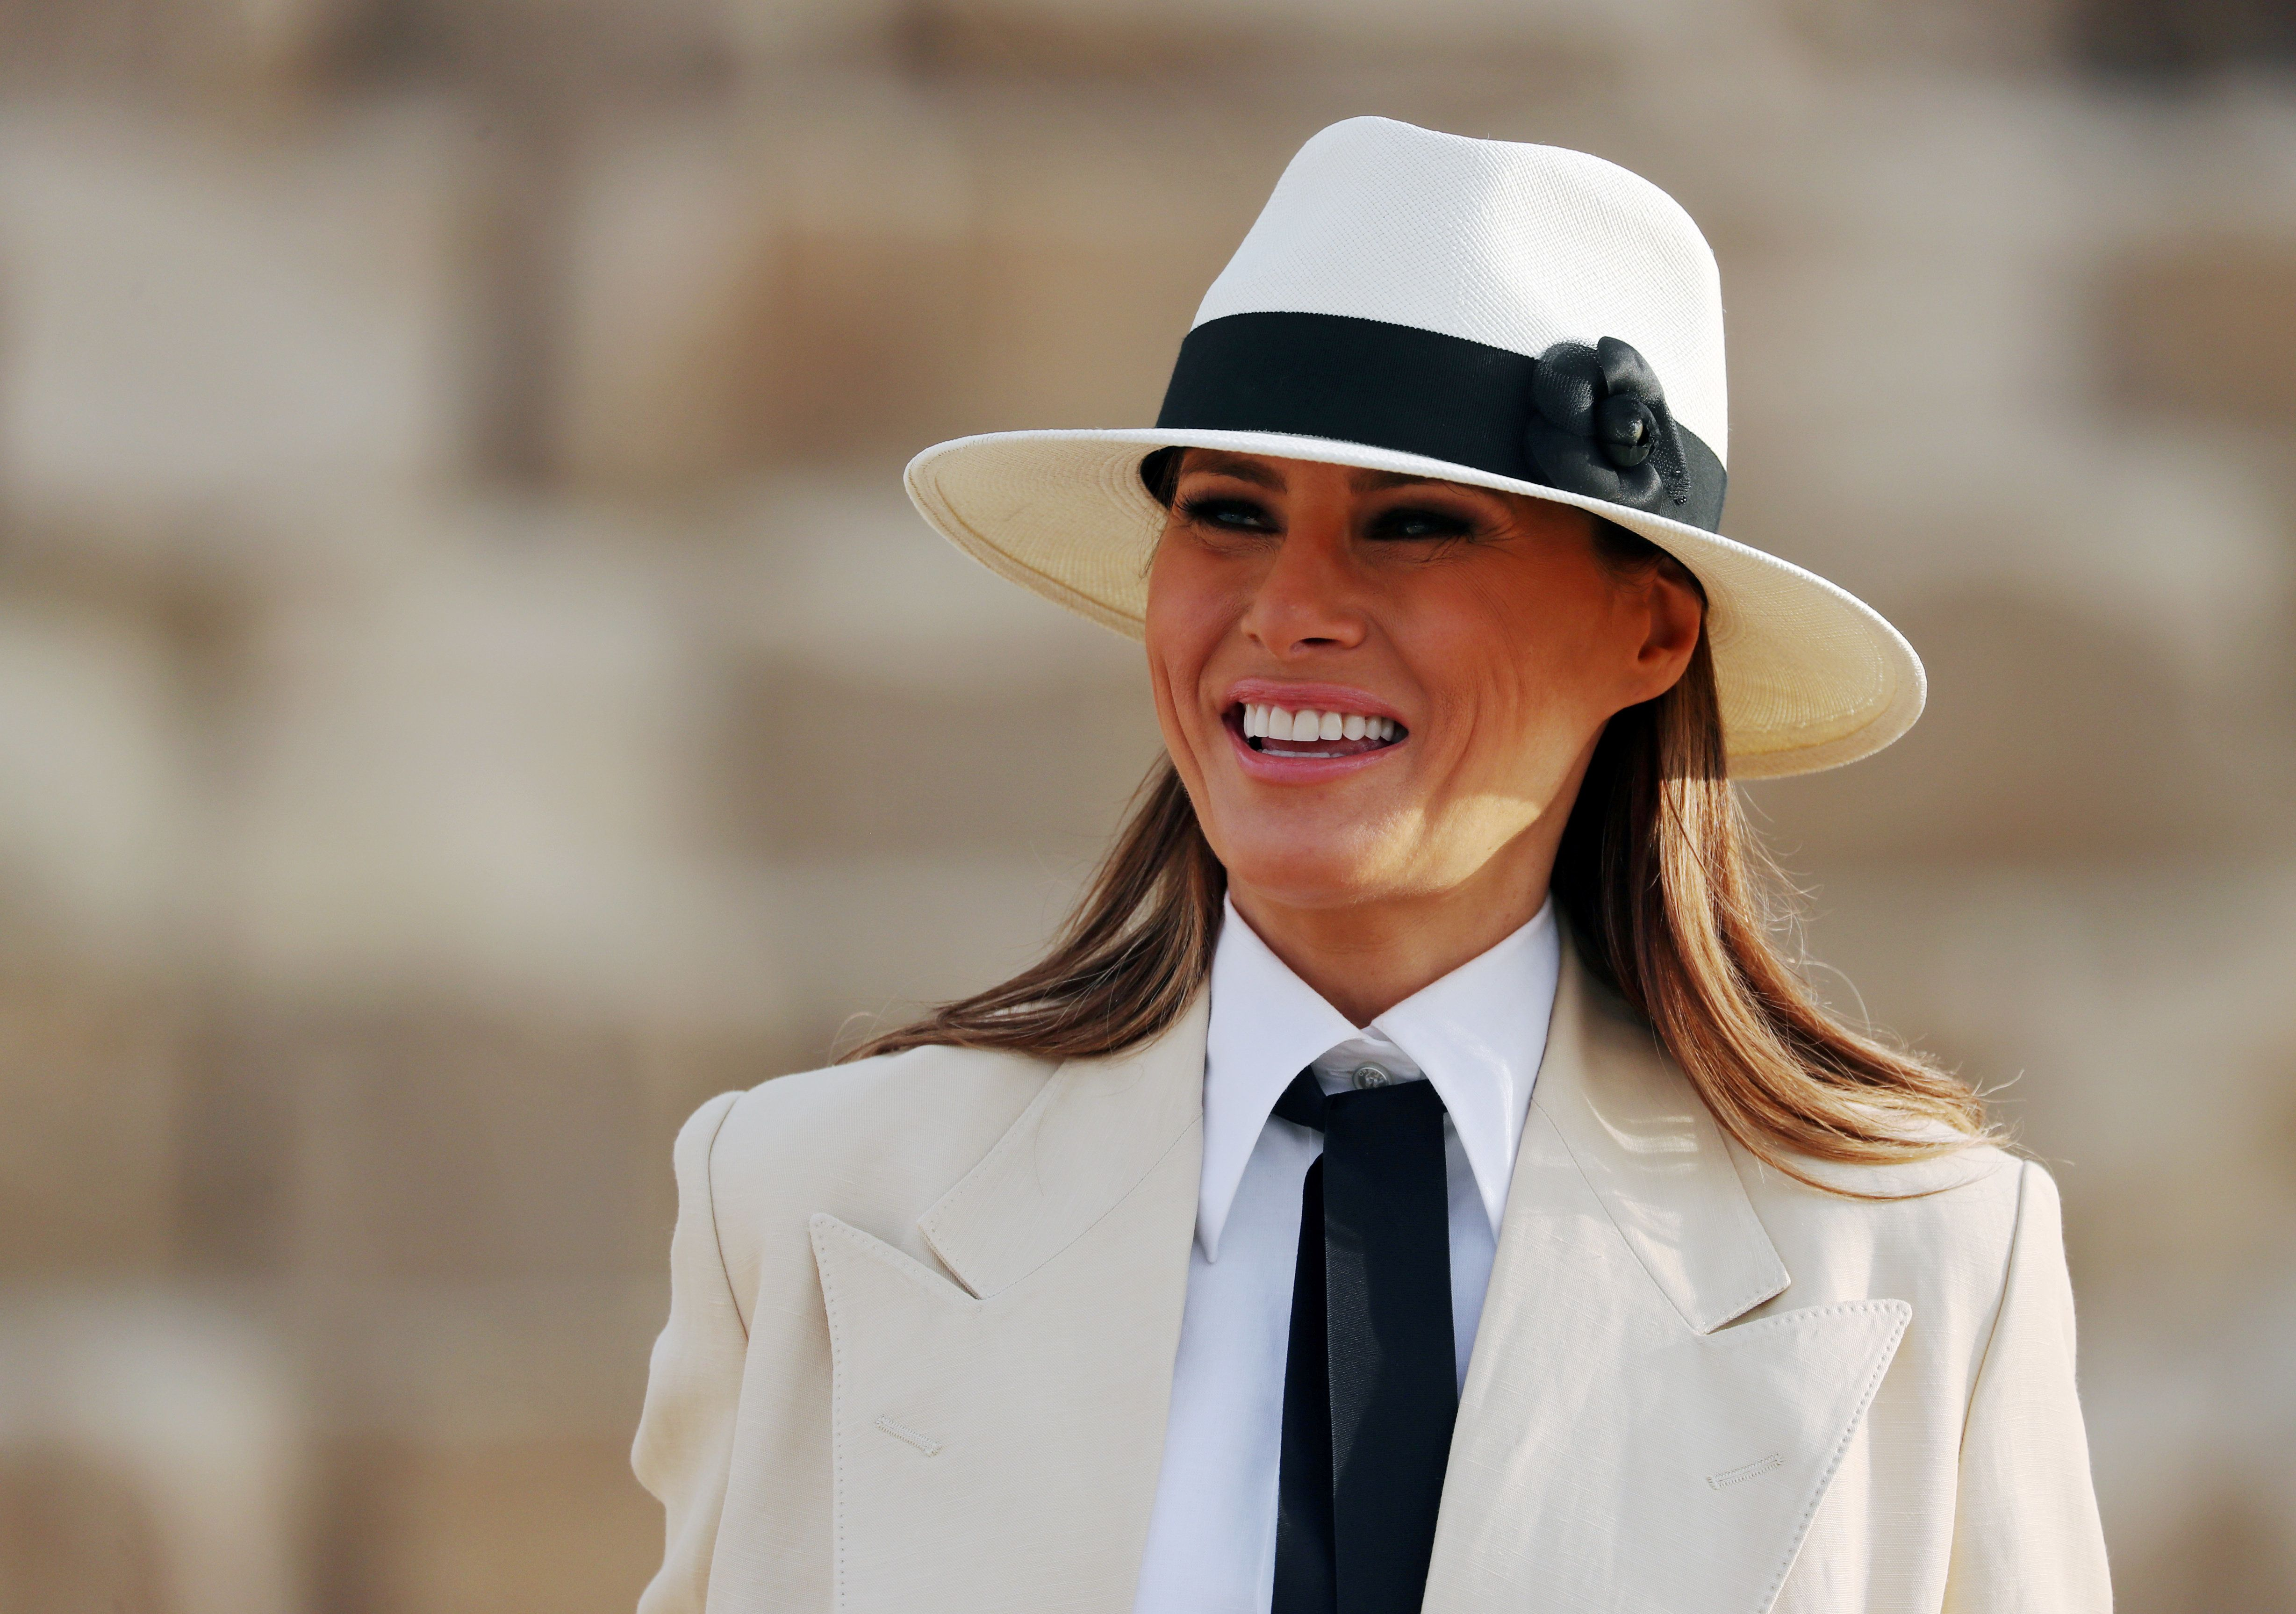 U.S. first lady Melania Trump visits the Pyramids in Cairo, Egypt, October 6, 2018. REUTERS/Carlo Allegri